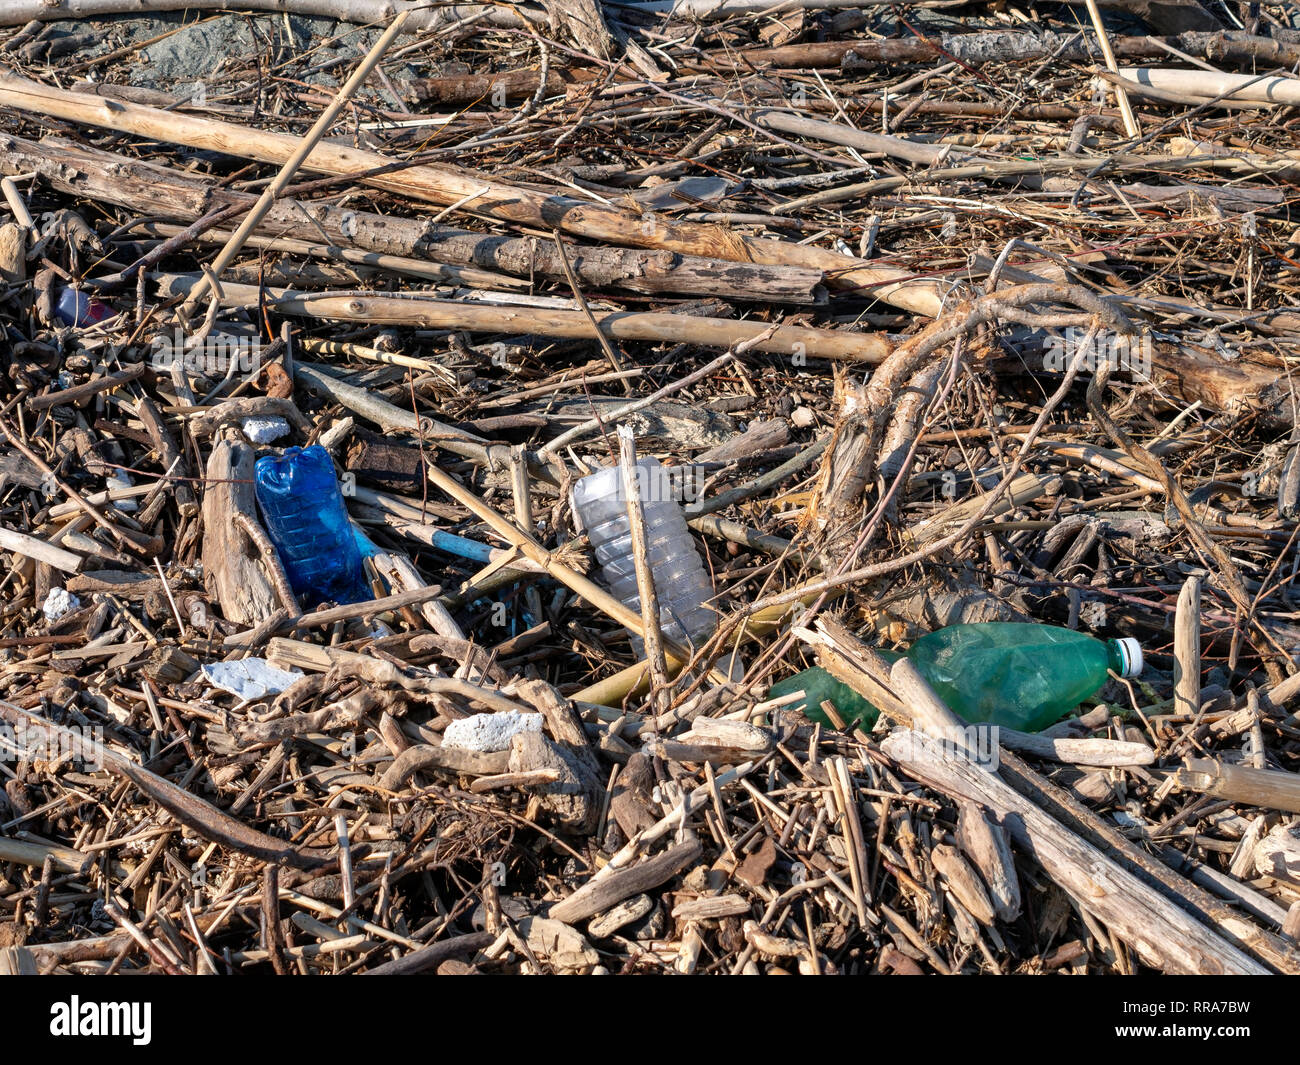 Beach debris washed up after winter storm. Wood branches drfitwood and plastic bottles. Storm aftermath. - Stock Image